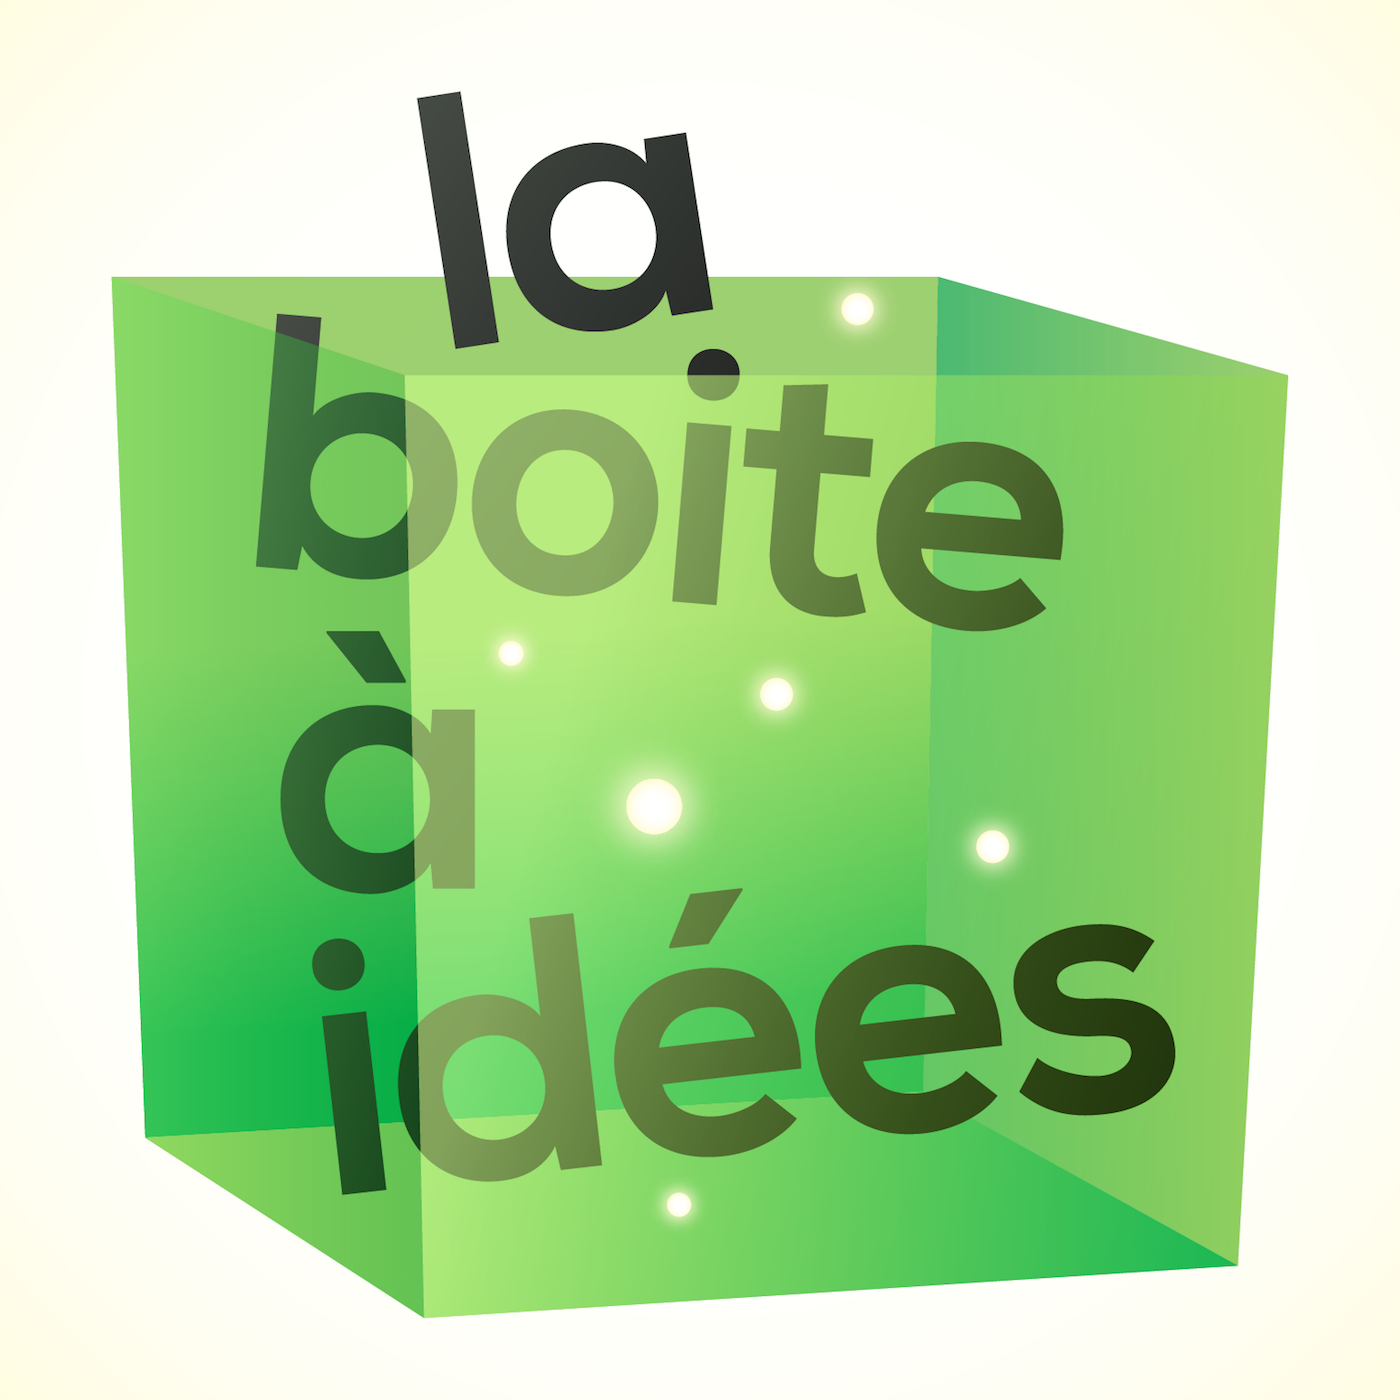 Tipeee la boite id es for Idee entreprise rentable